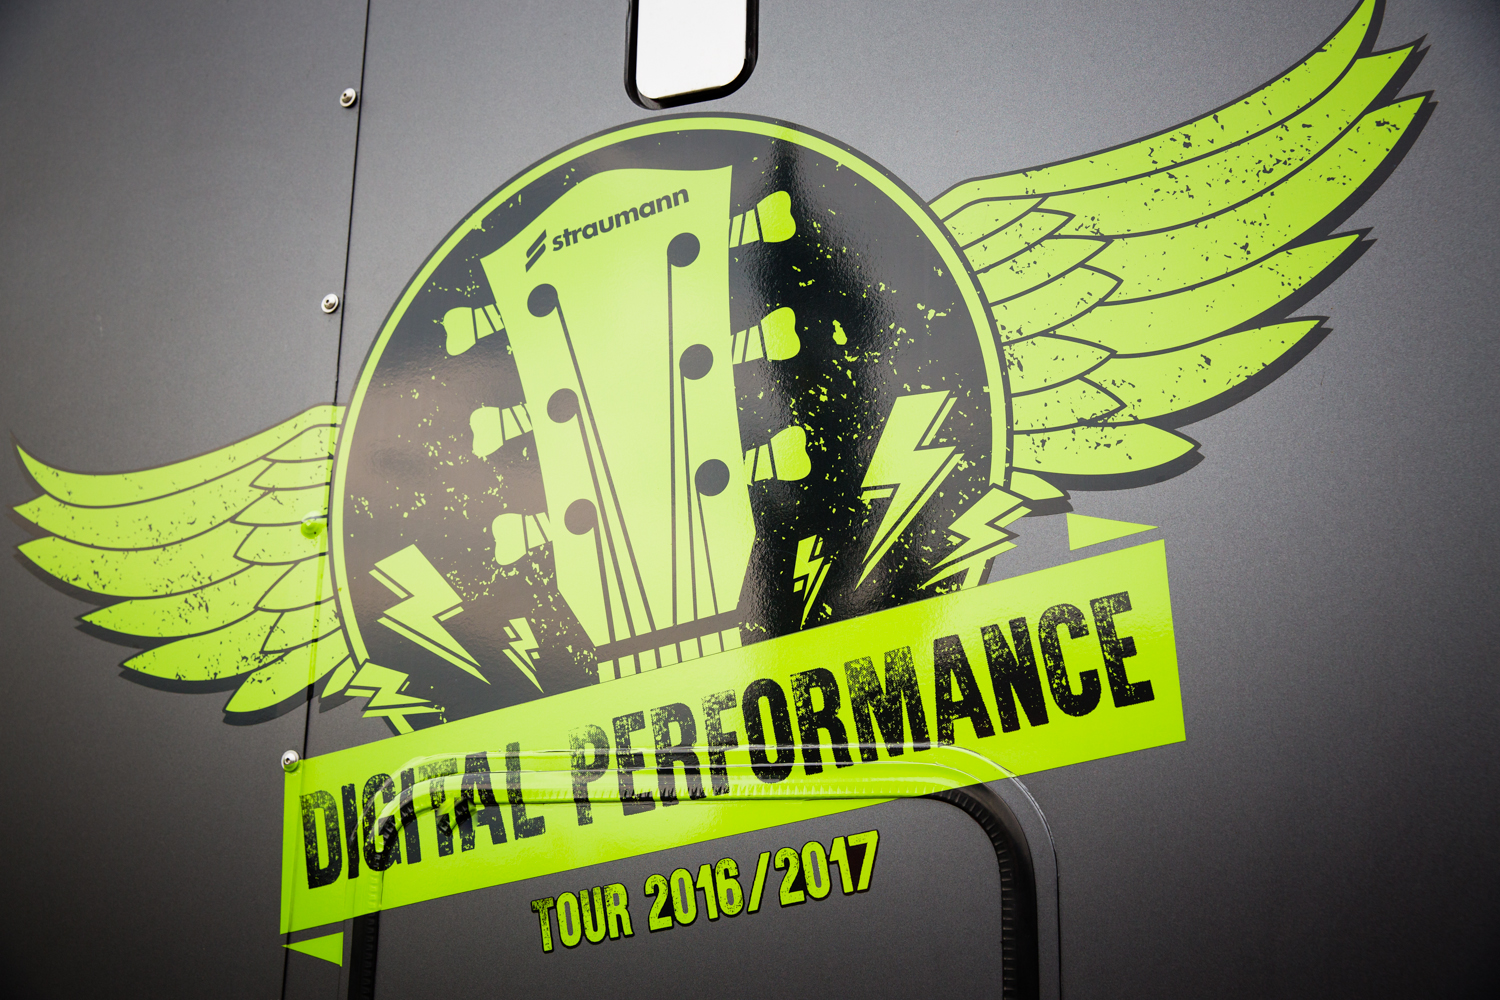 Evenementenfotografie, Straumann Event Digital Performance Tour